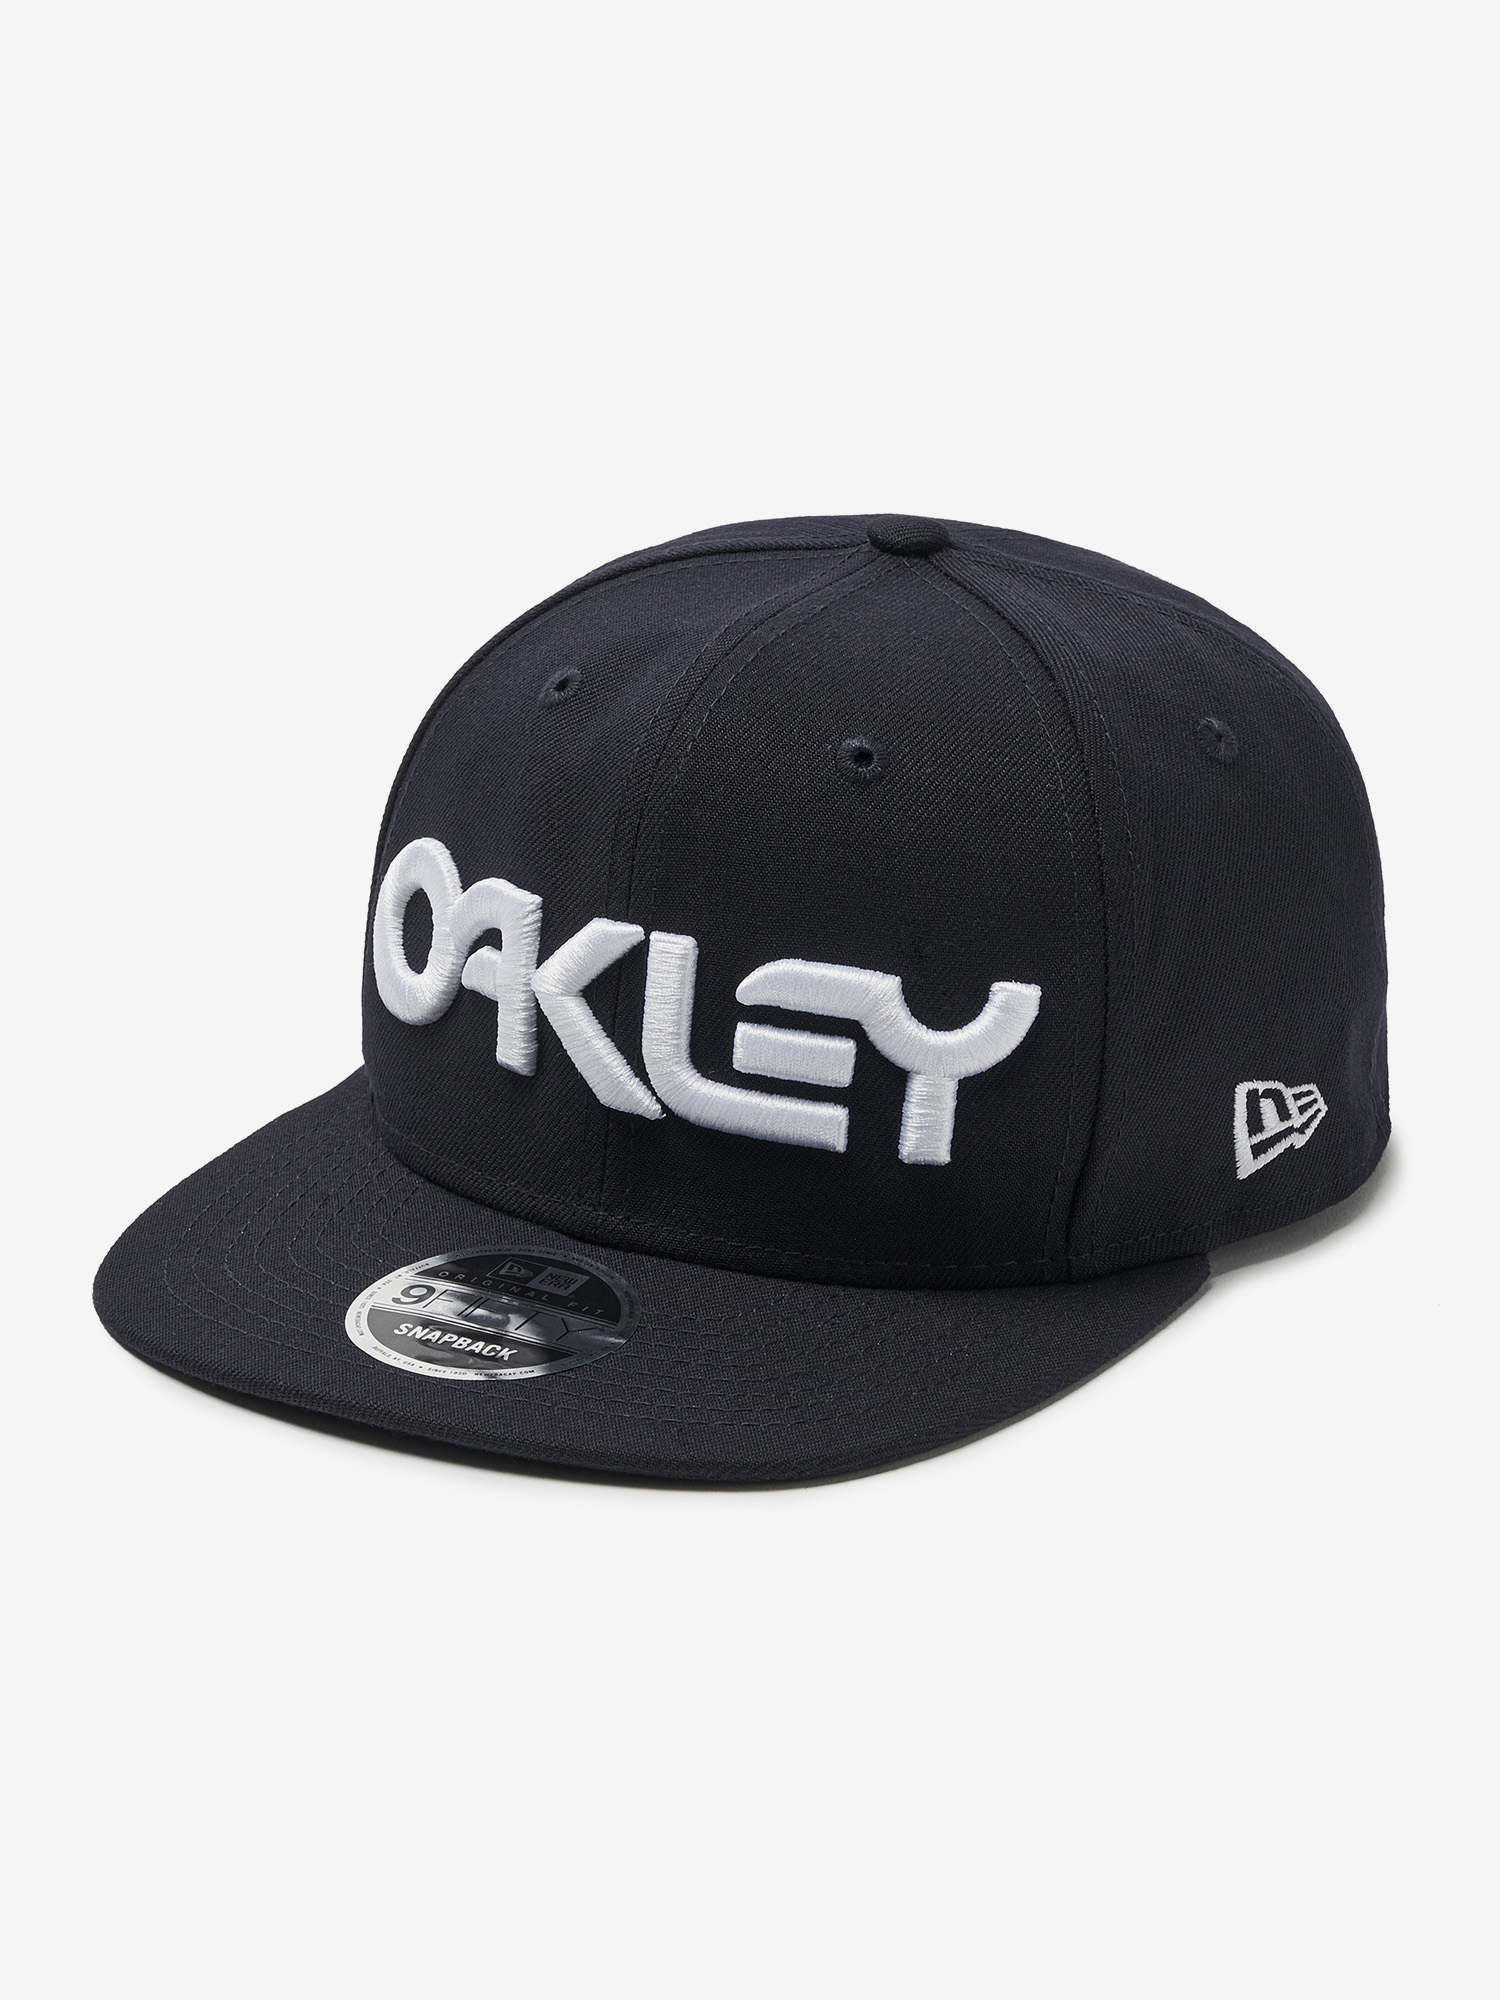 Čepice Oakley Mark Ii Novelty Snap Back Fathom Barevná